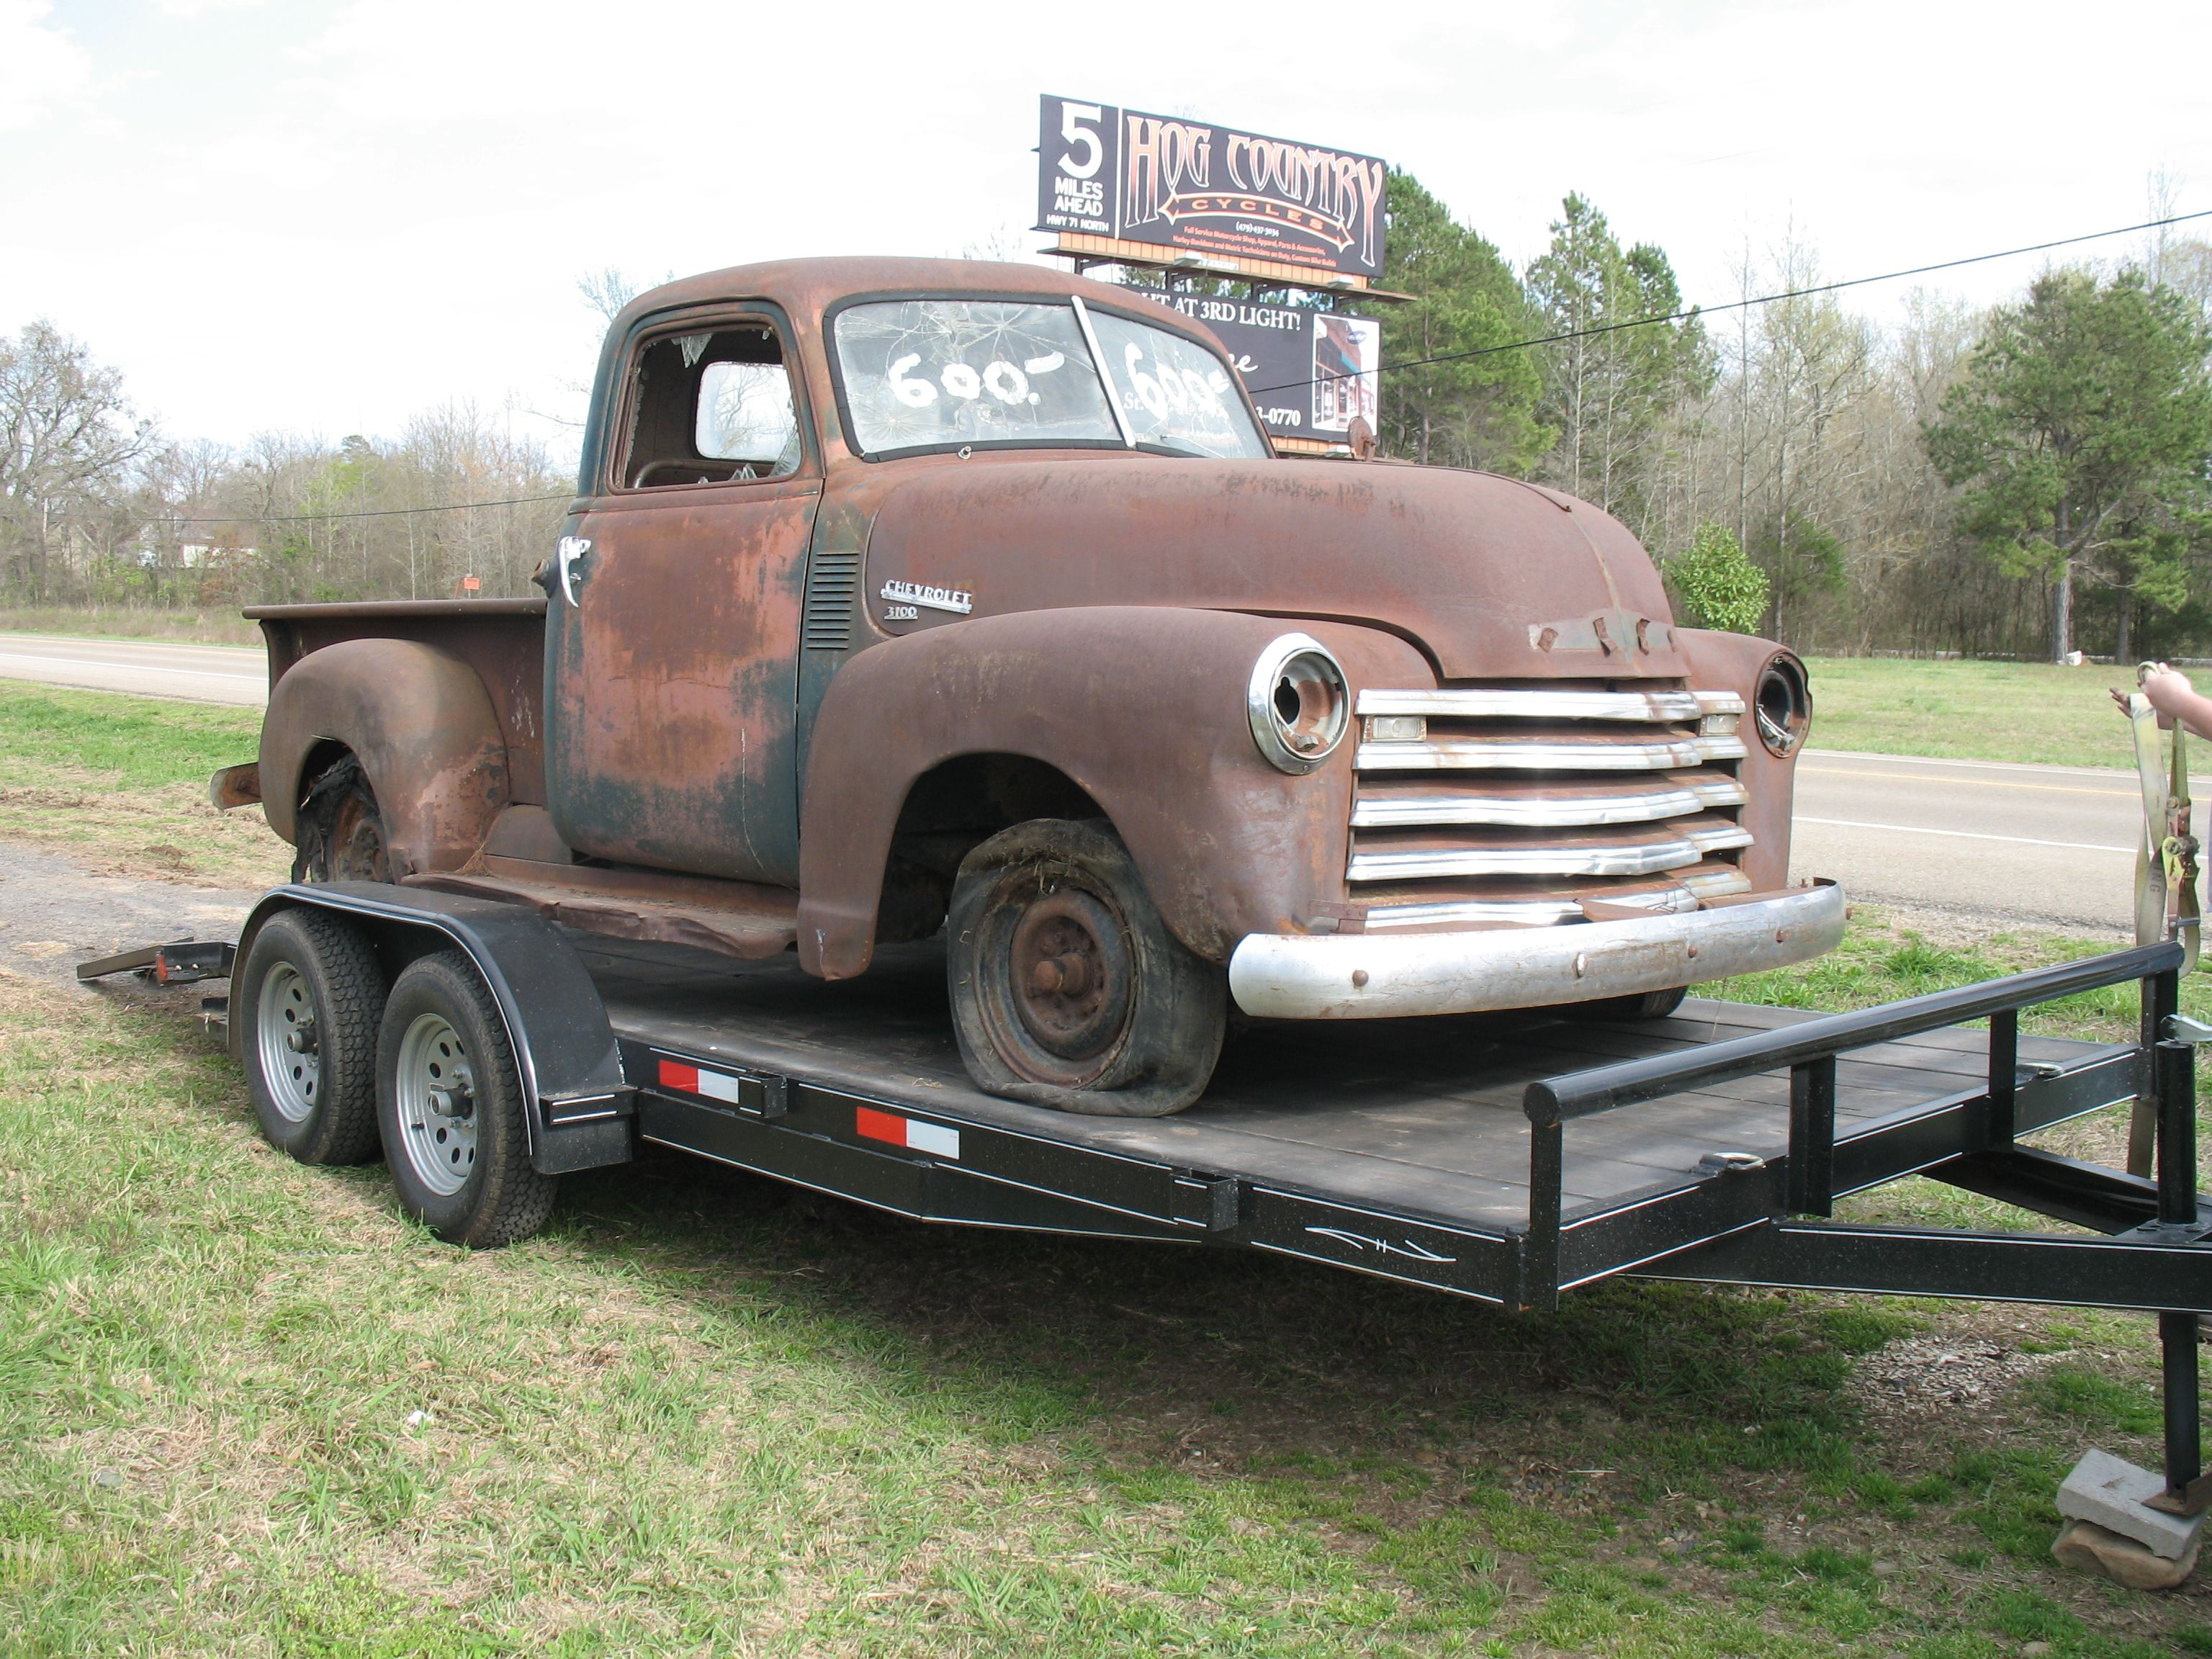 My truck kenziemx3 1950 chevy 3100 saved from the side of hwy